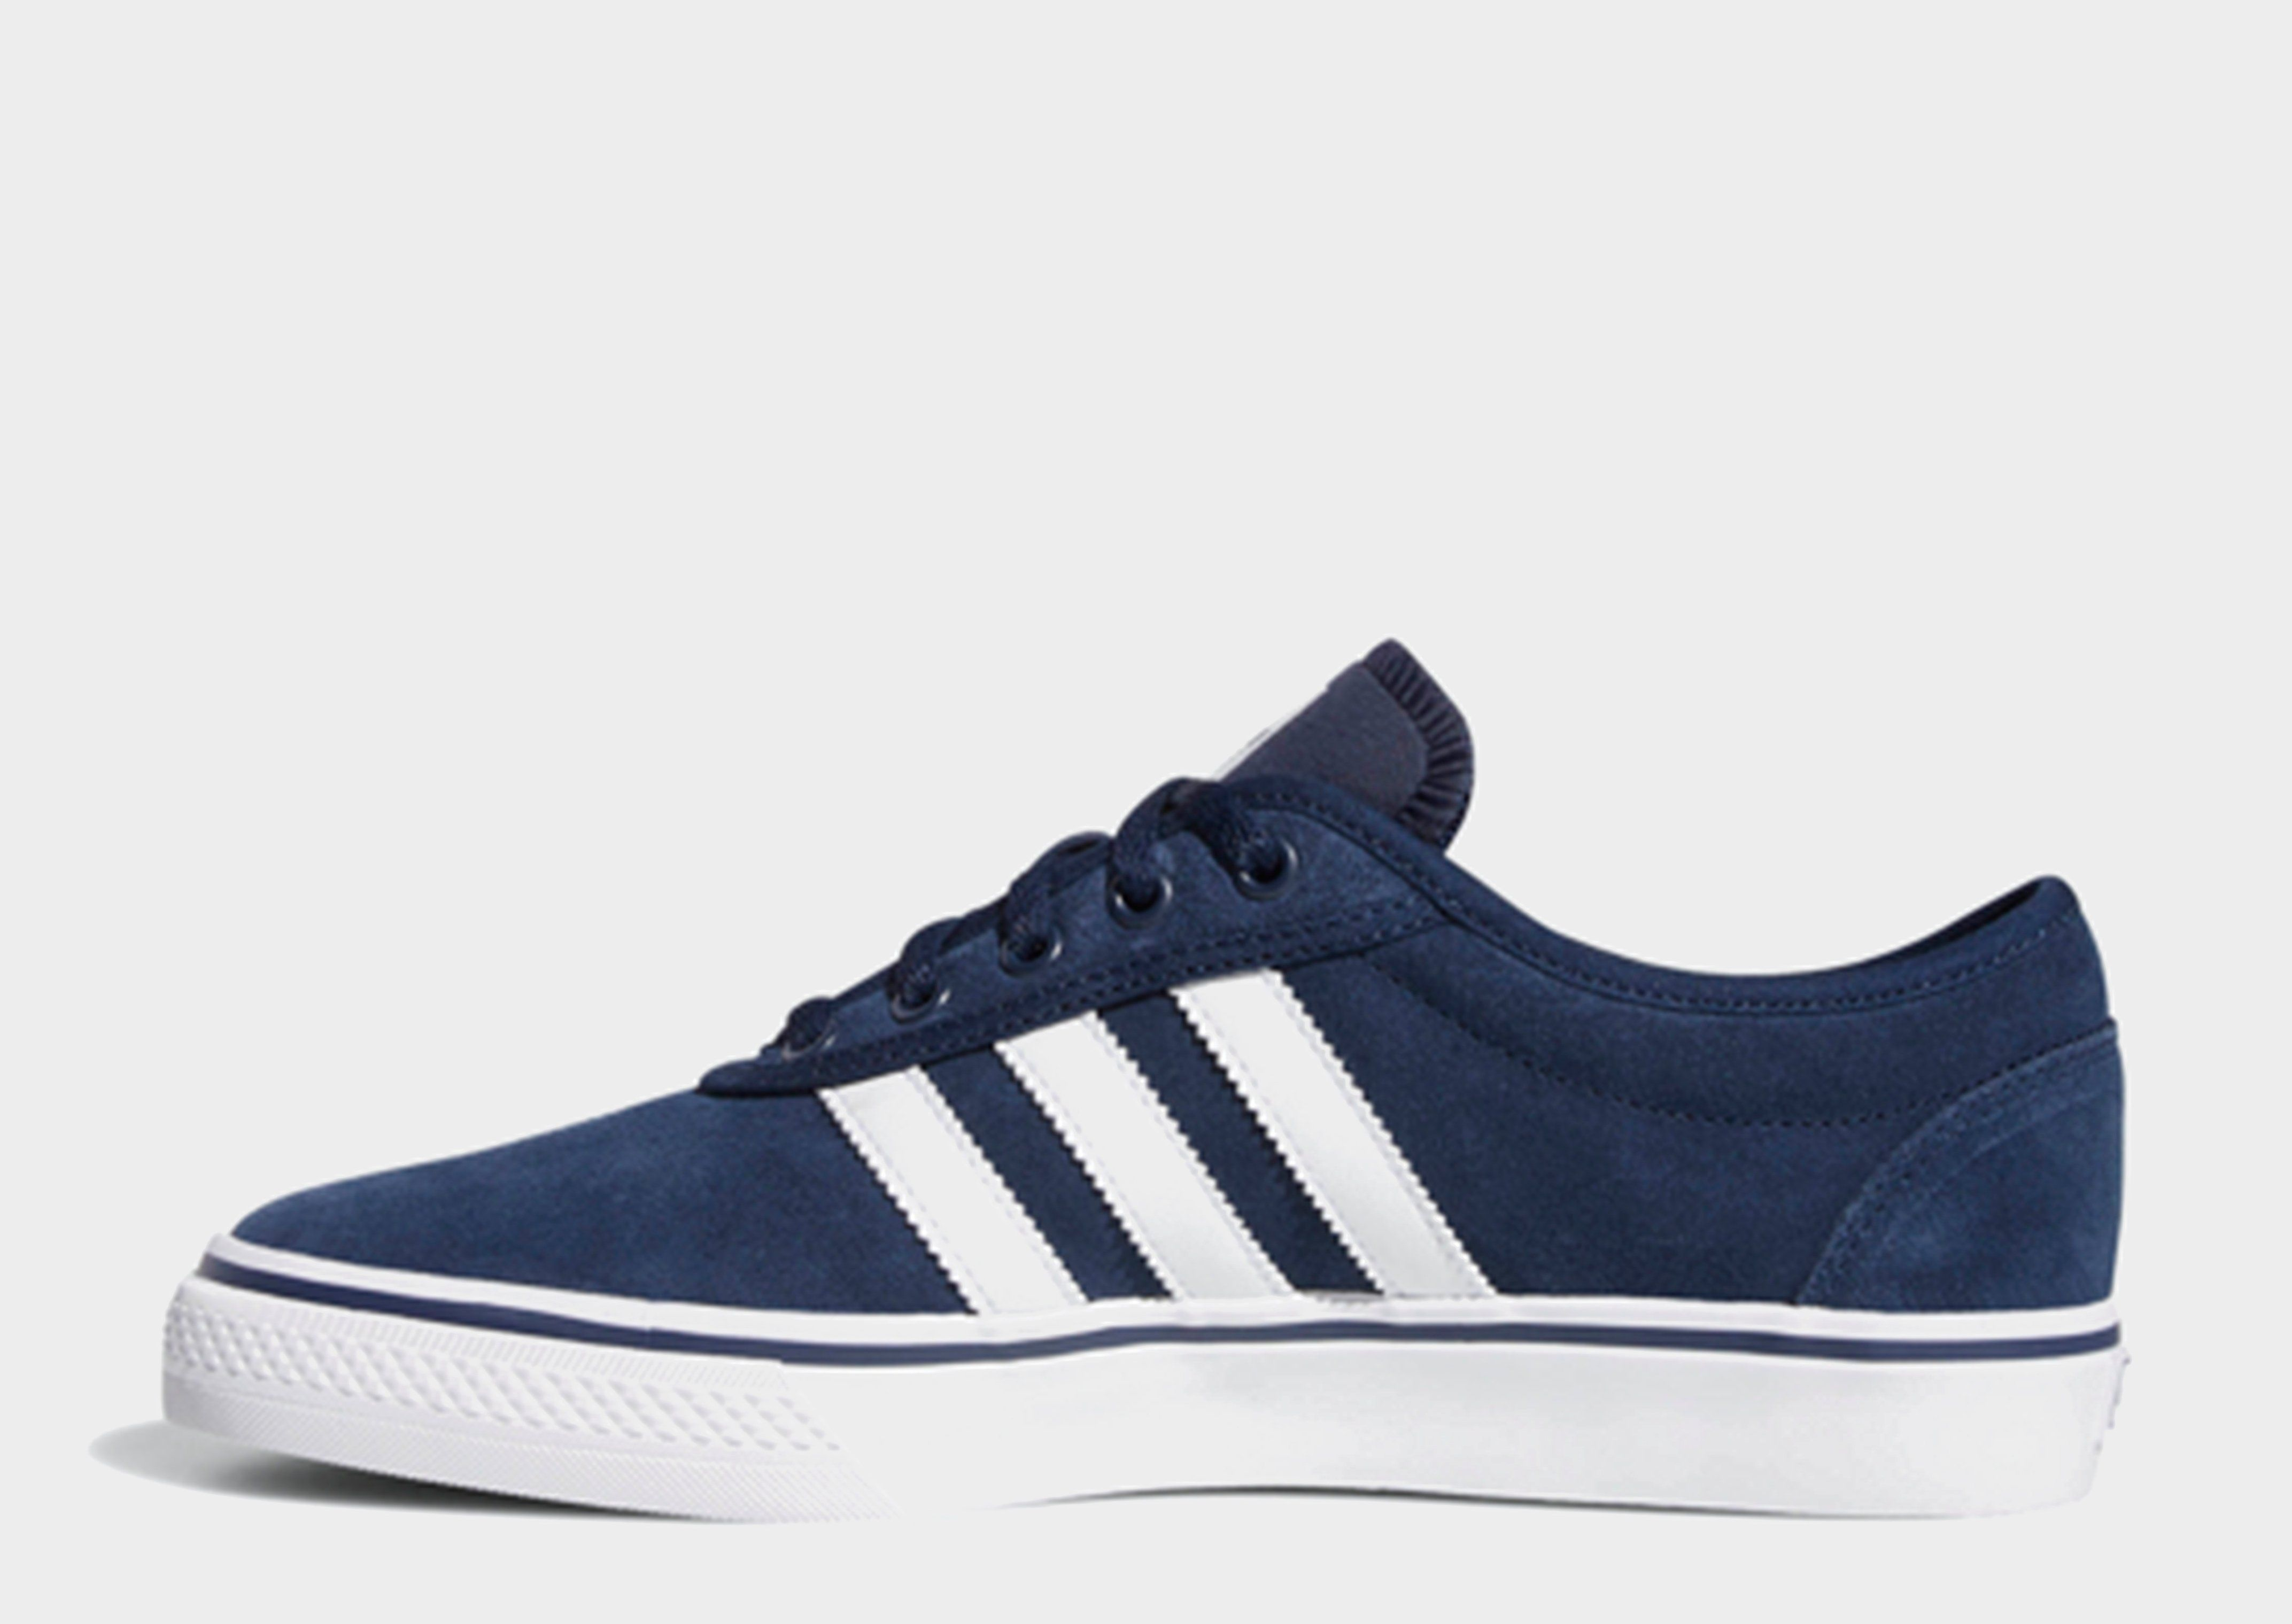 promo code adbba b9826 ADIDAS adiease Shoes   JD Sports